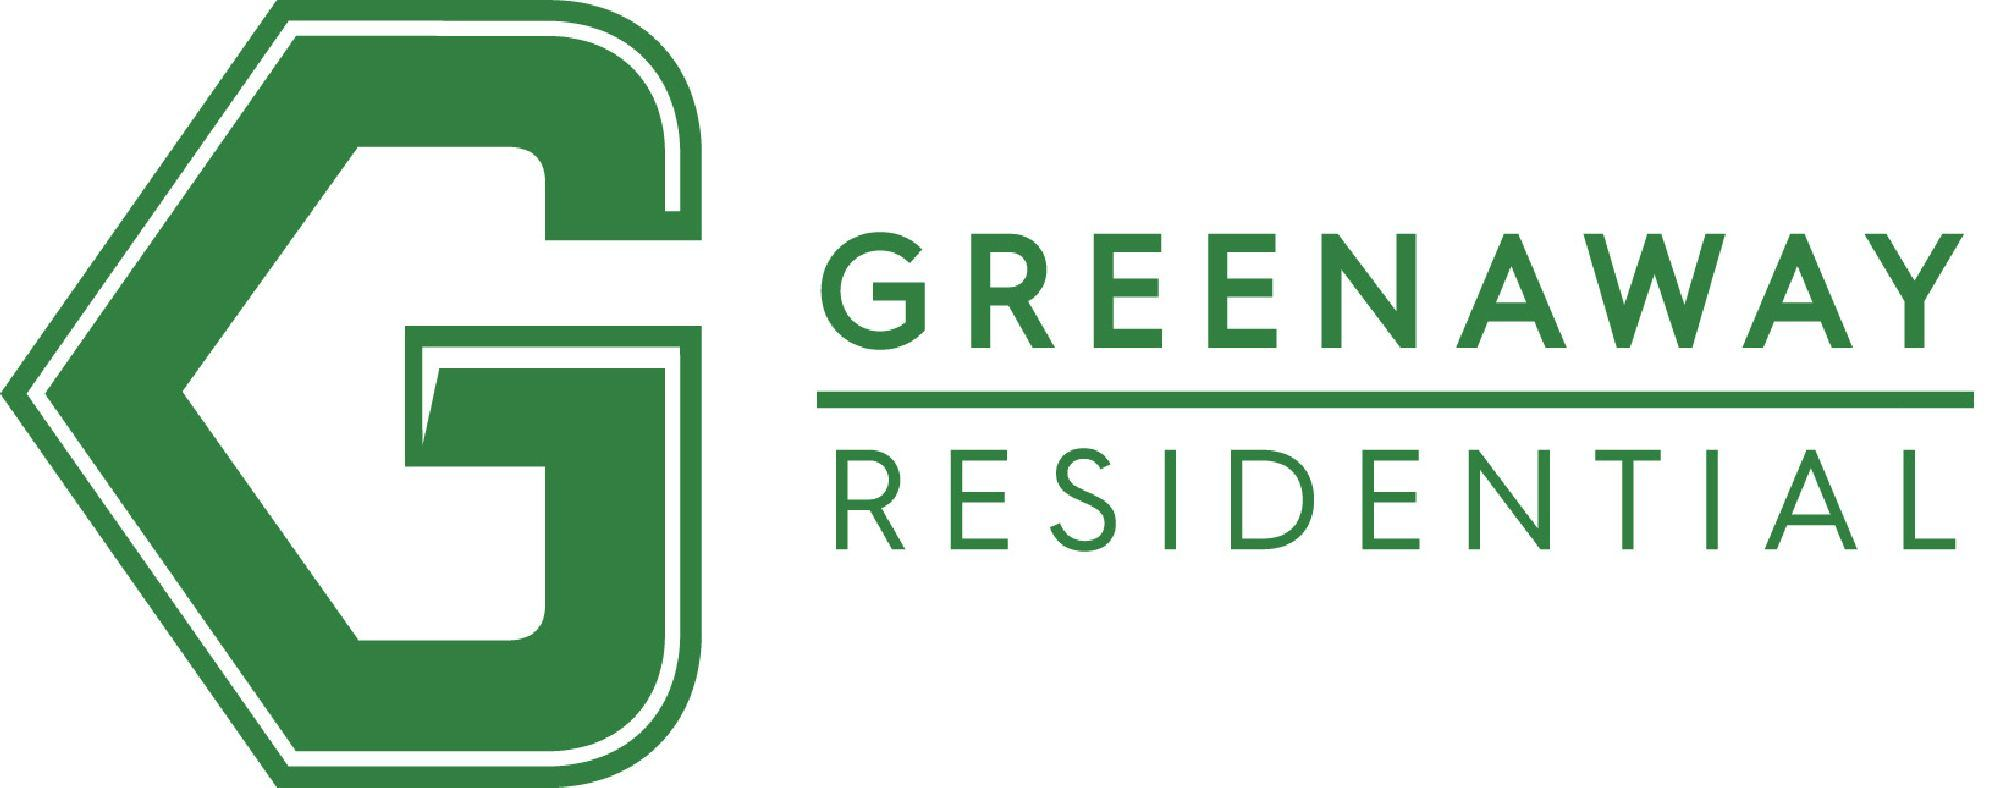 Greenaway Residential Estate Agents & Letting Agents Logo